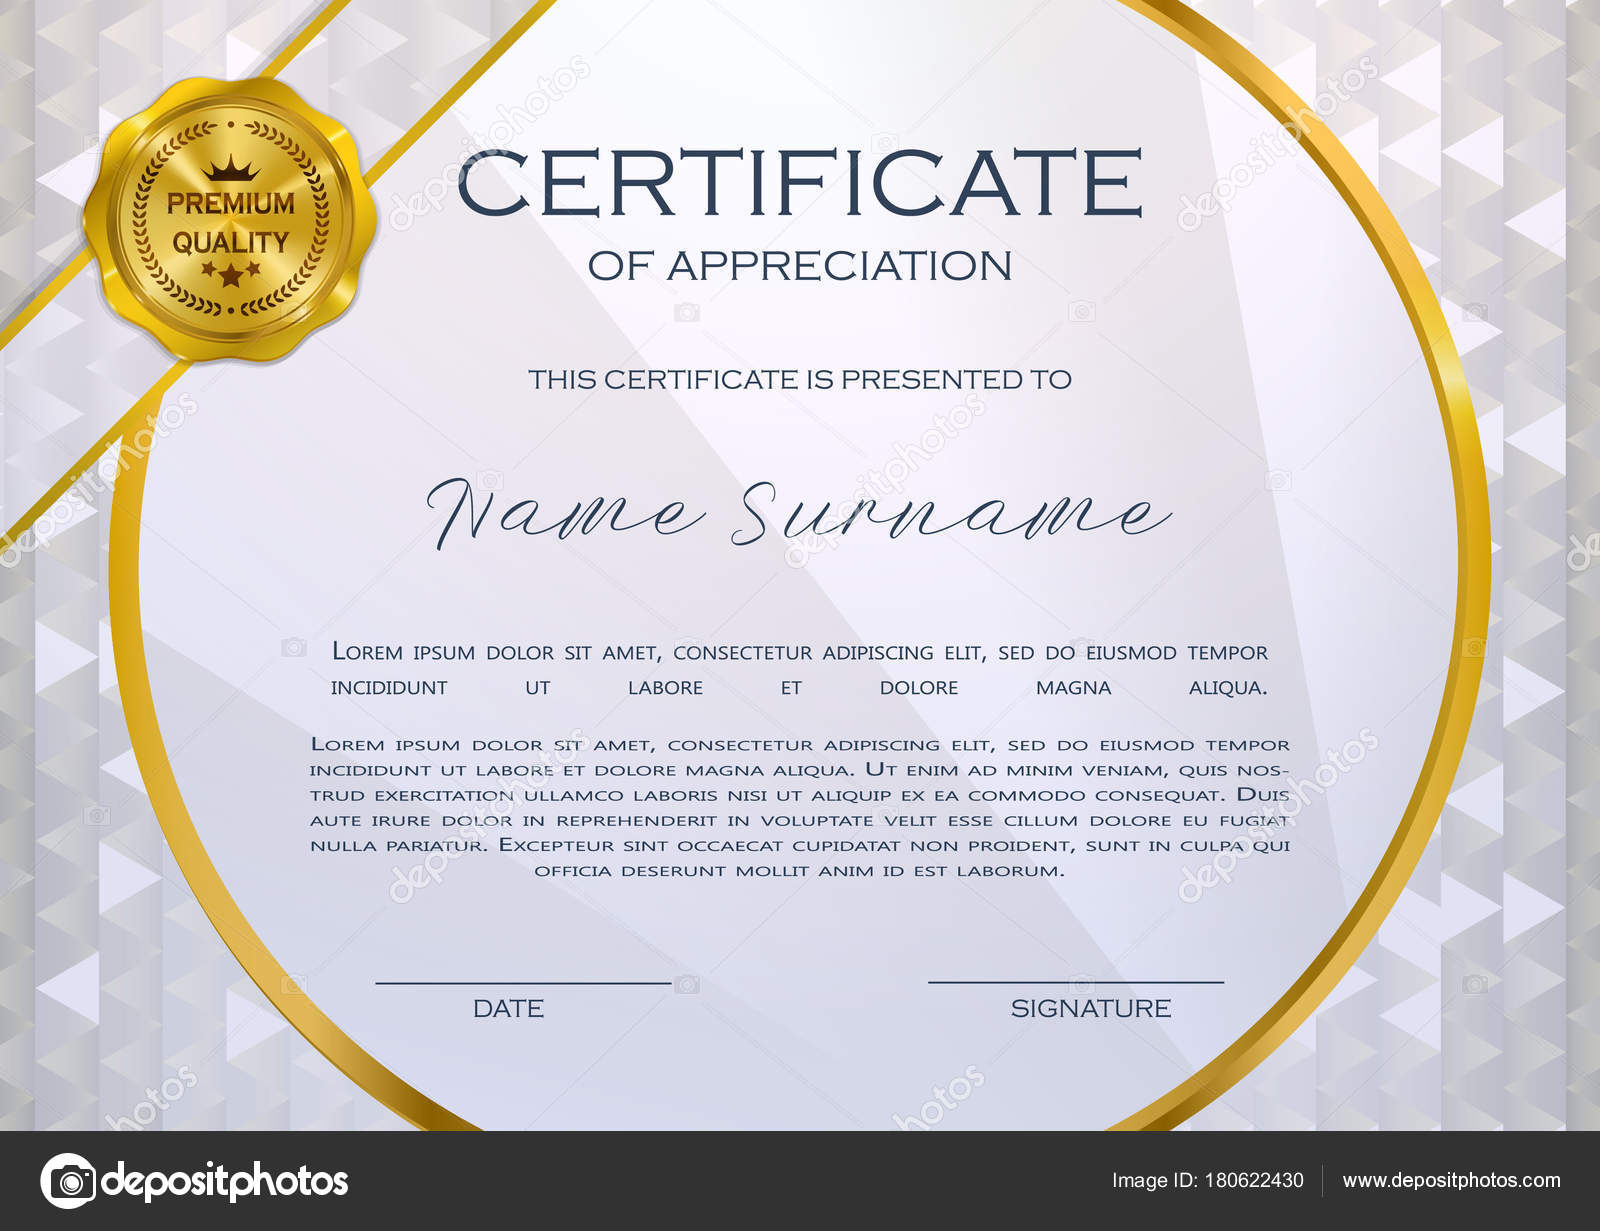 qualification certificate of appreciation design elegant luxury and modern pattern best quality award template with white and golden tapes shapes badge